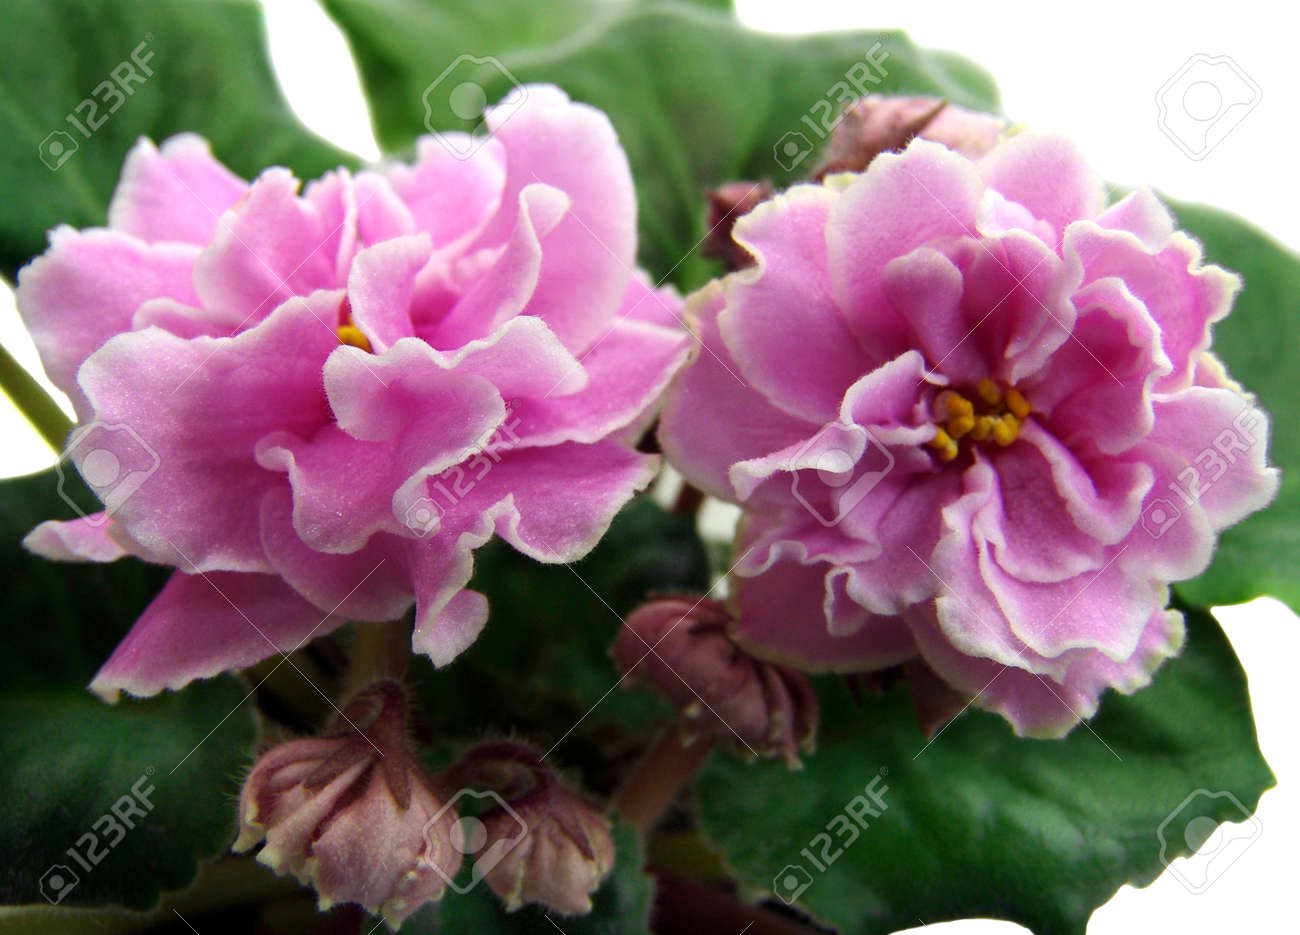 Flowers and buds of collection african violets ek lyubasha stock flowers and buds of collection african violets mightylinksfo